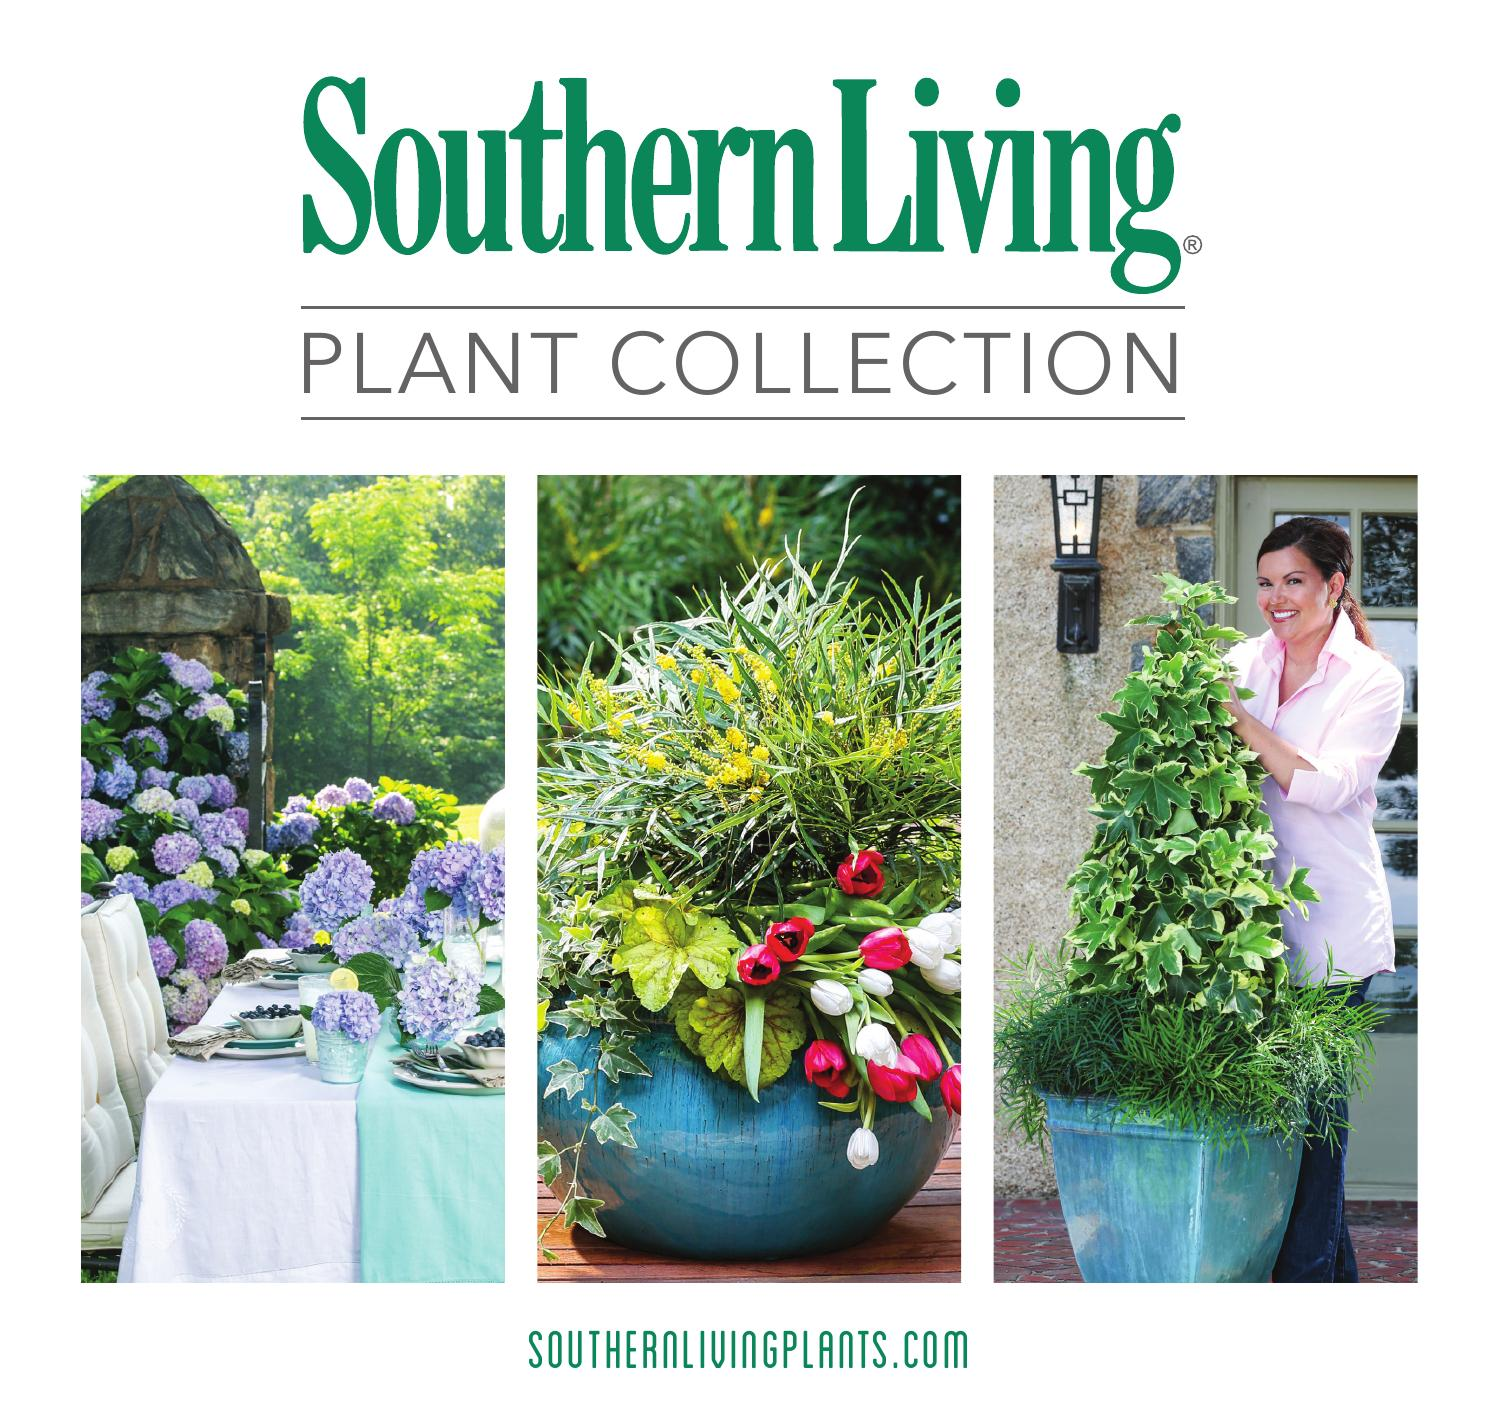 Southern living plant collection brochure 2014 by opteracreative issuu - Southern living home plans with photos collection ...